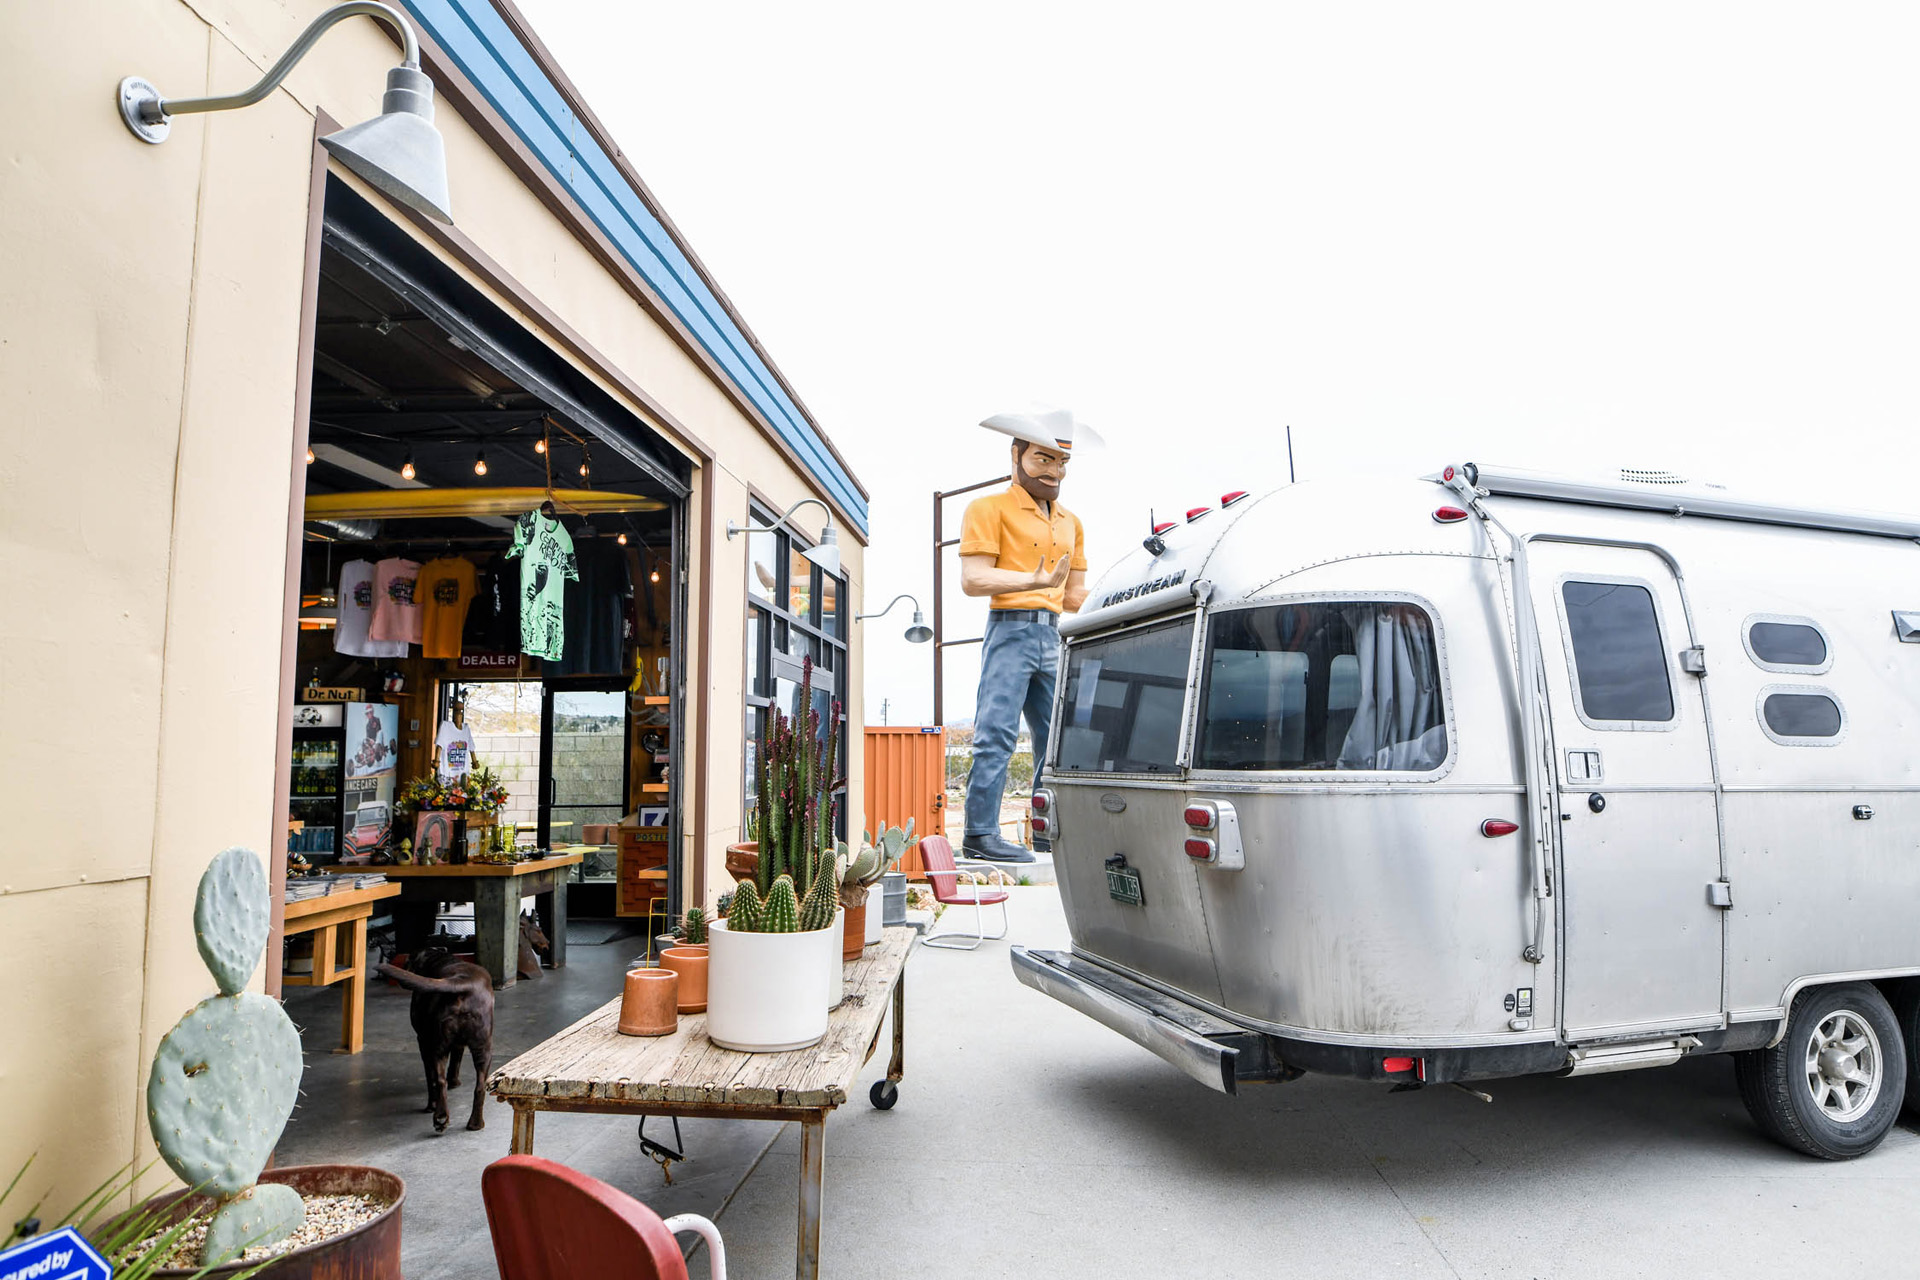 Airstream Travel Trailer RV Exterior